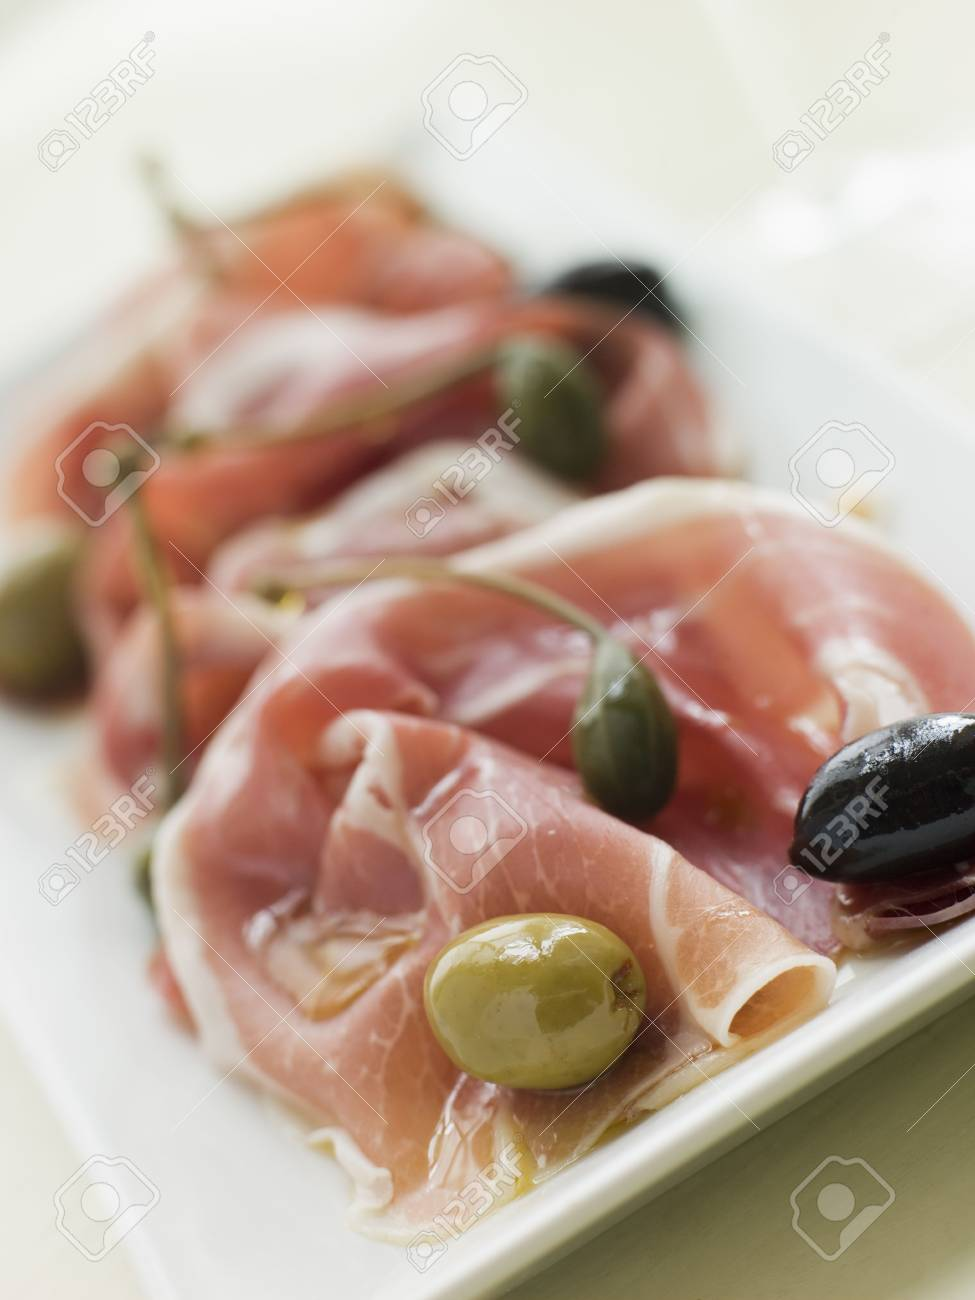 Serano Ham Olives and Caper Berries Stock Photo - 3135308